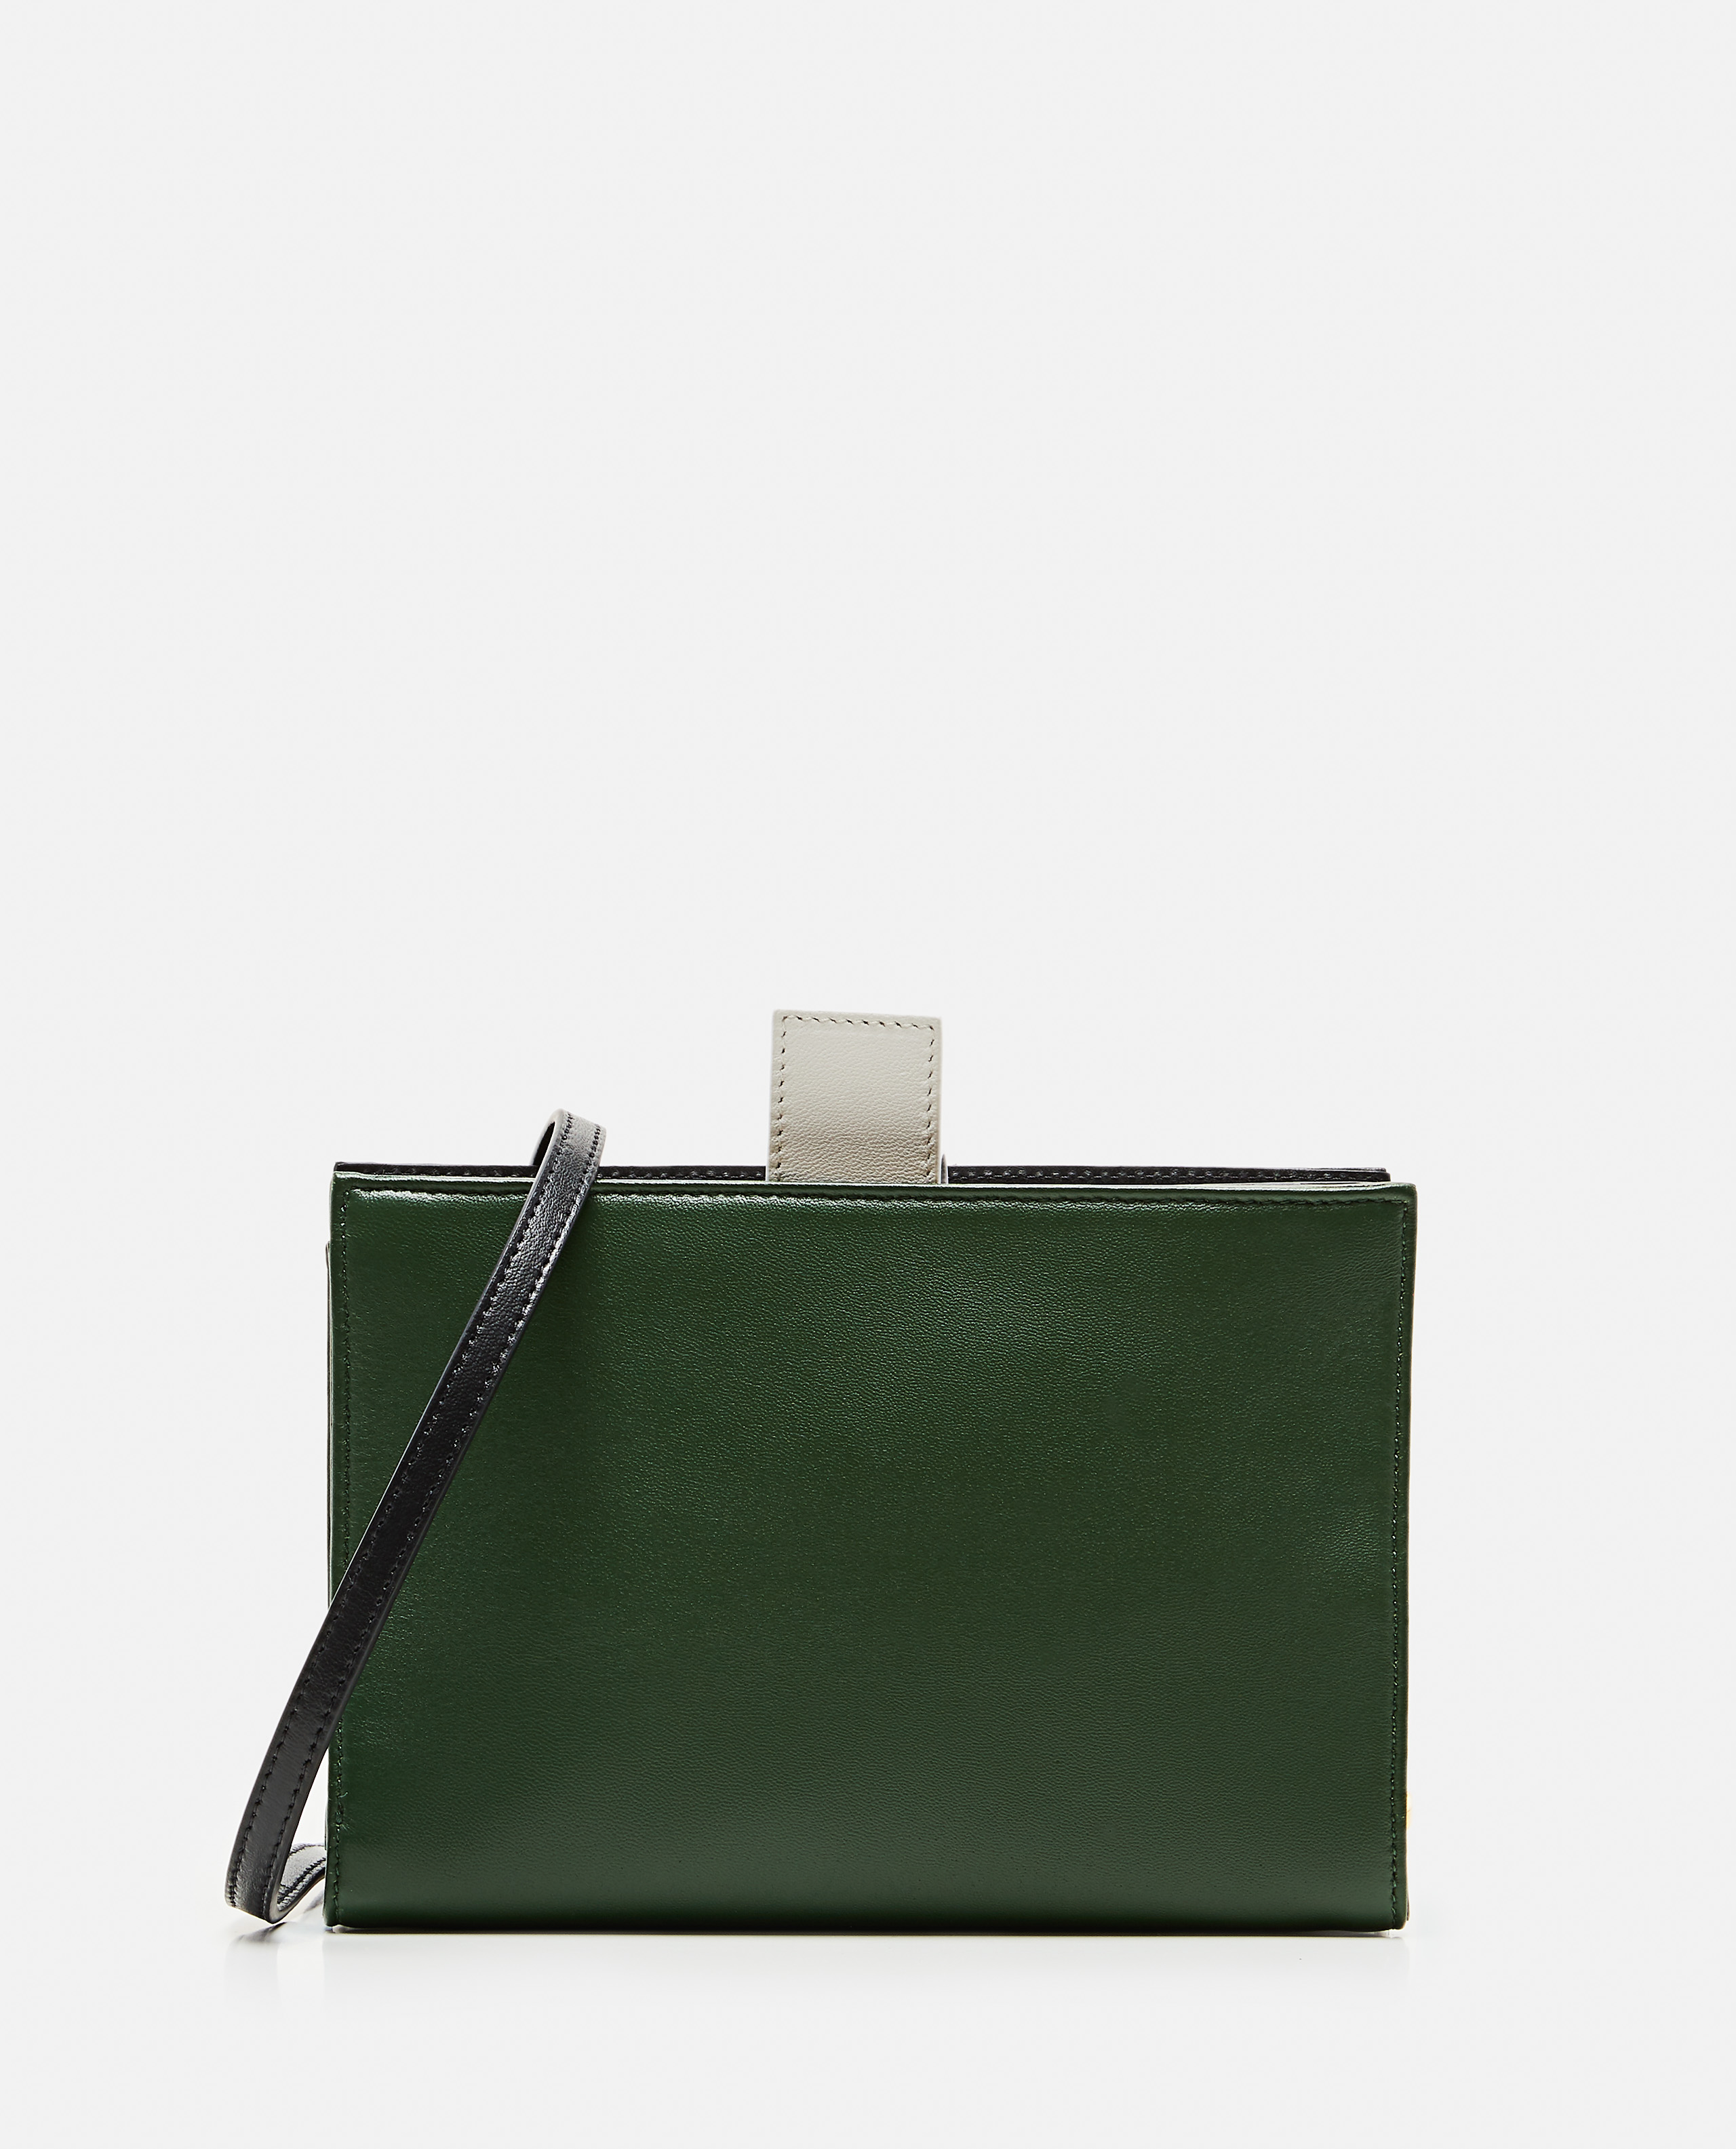 Two-tone color block shoulder bag